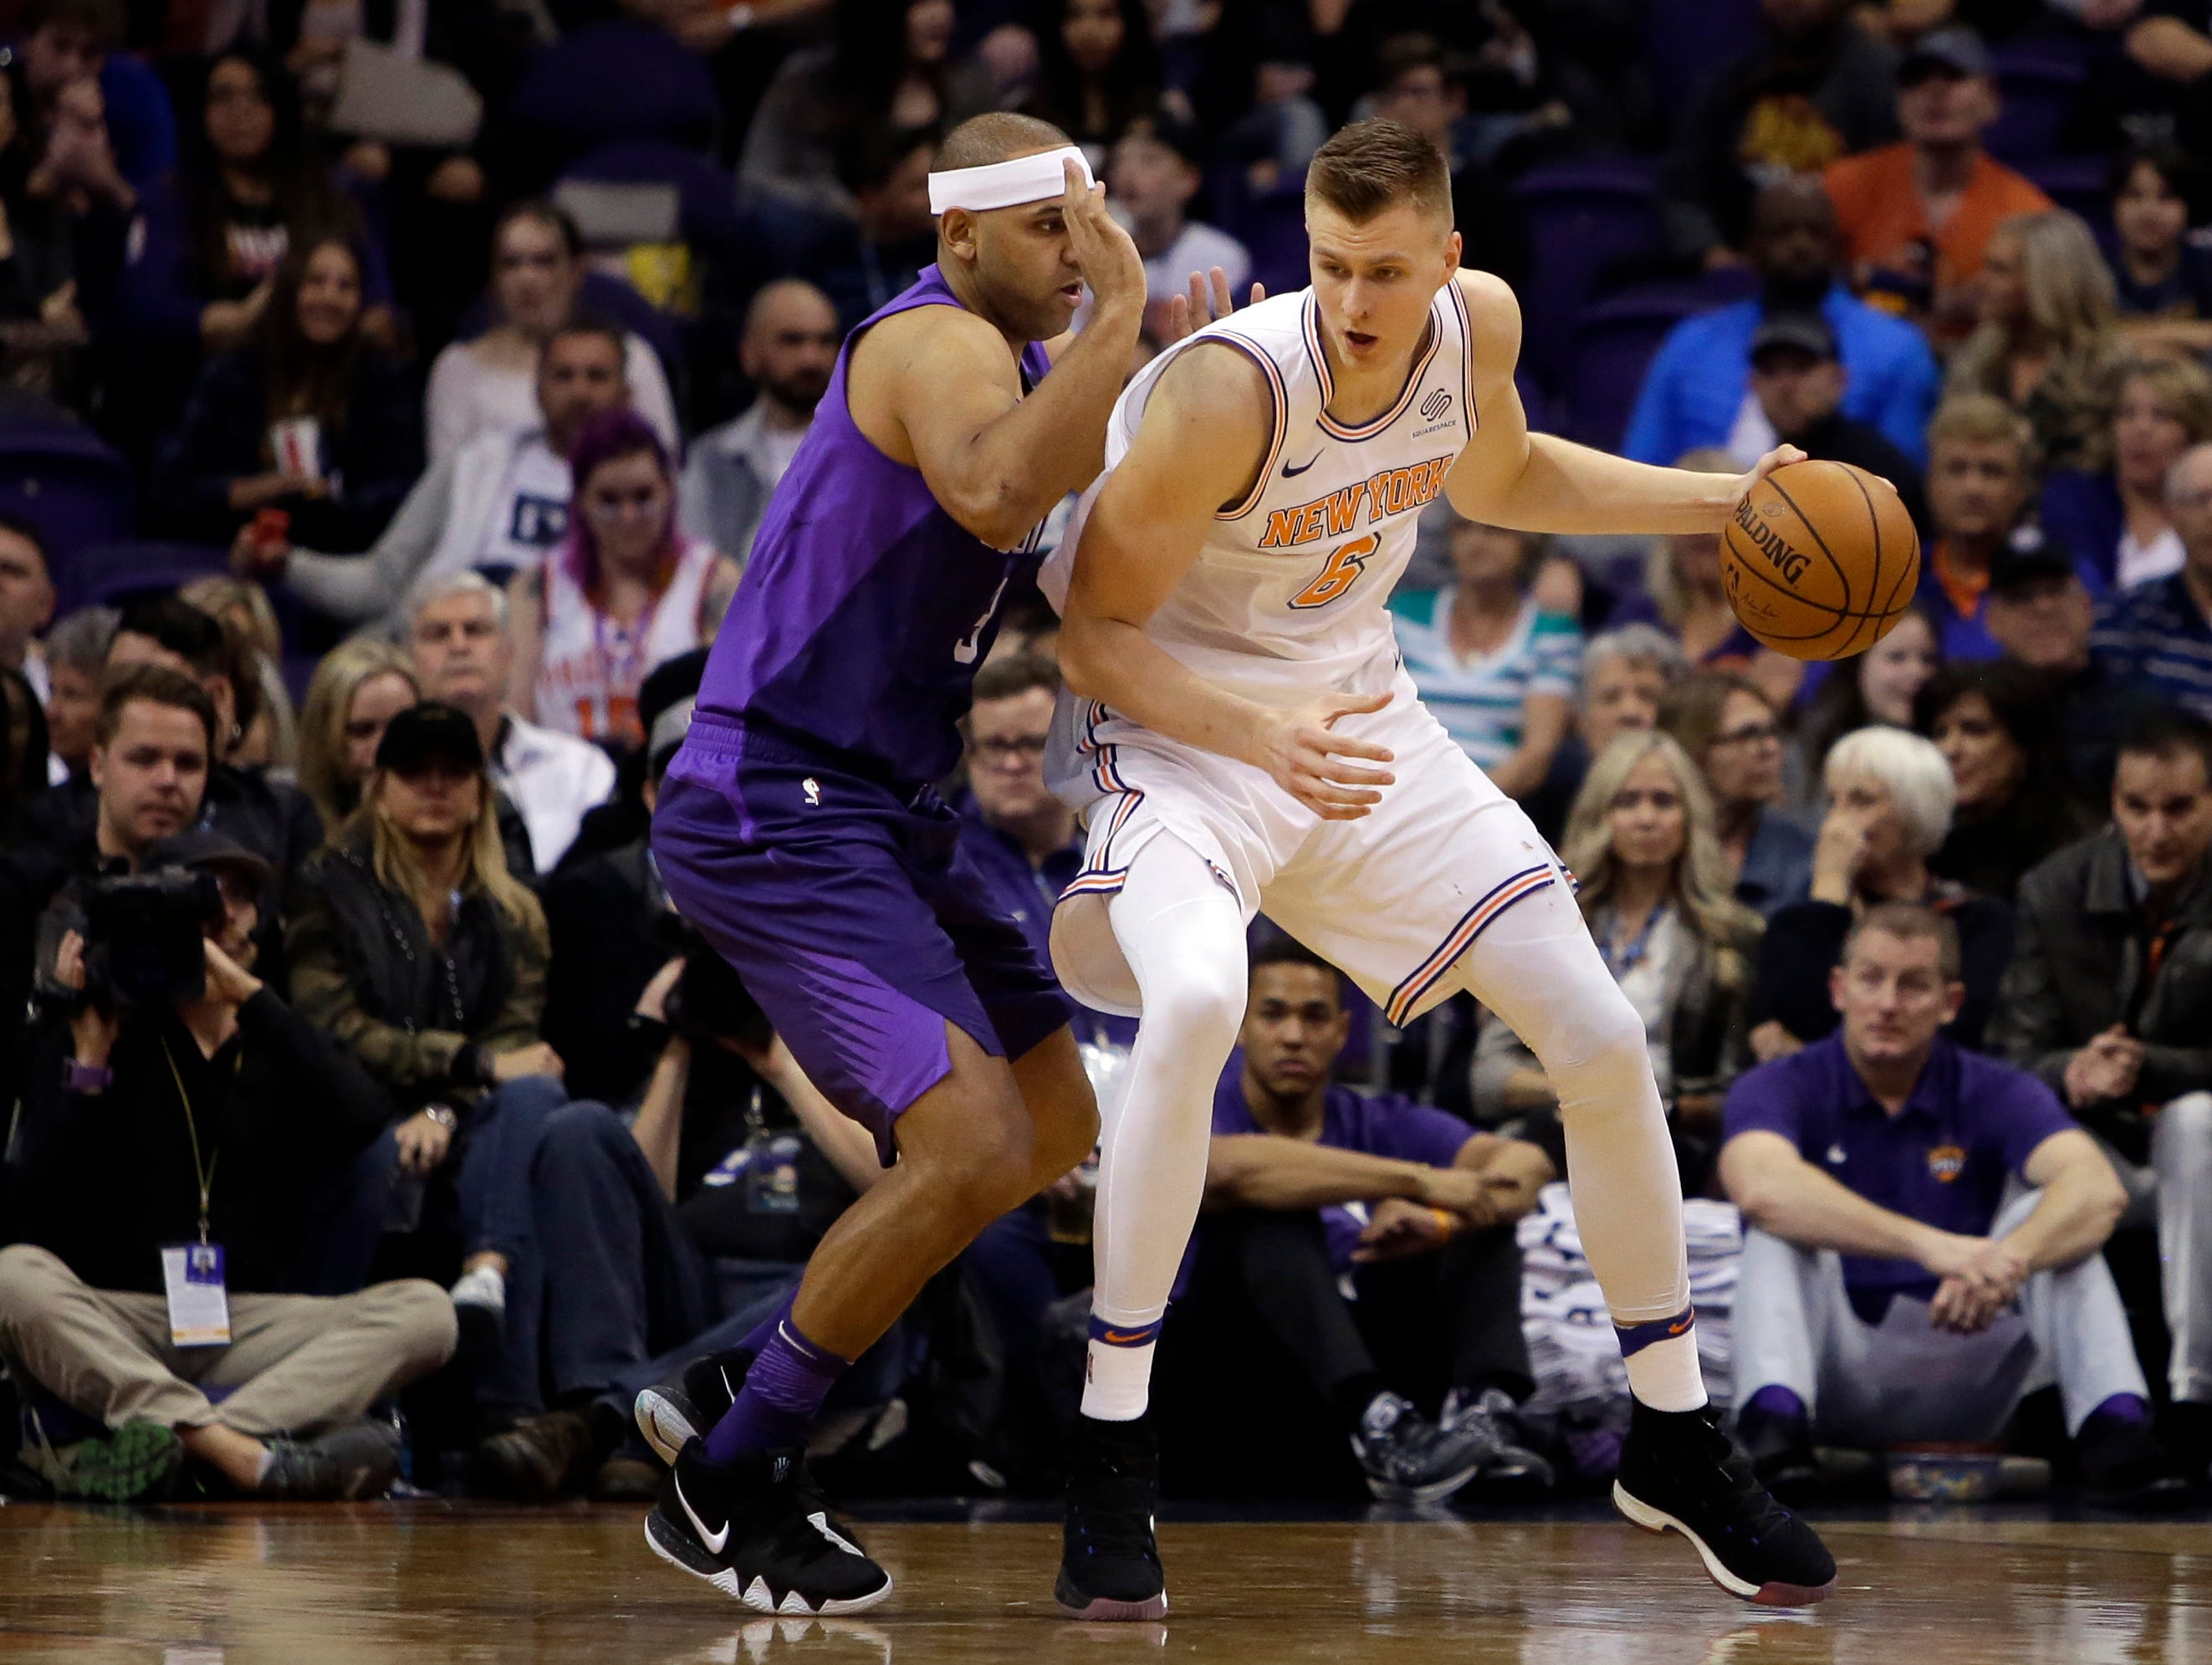 FILE - In this Jan. 26, 2018, file photo, New York Knicks forward Kristaps Porzingis (6) controls the ball in the first half of an NBA basketball game against the Phoenix Suns in Phoenix. Porzingis' left knee is healing well from a torn ACL and he will be re-evaluated in mid-February 2019. (AP Photo/Rick Scuteri, File)